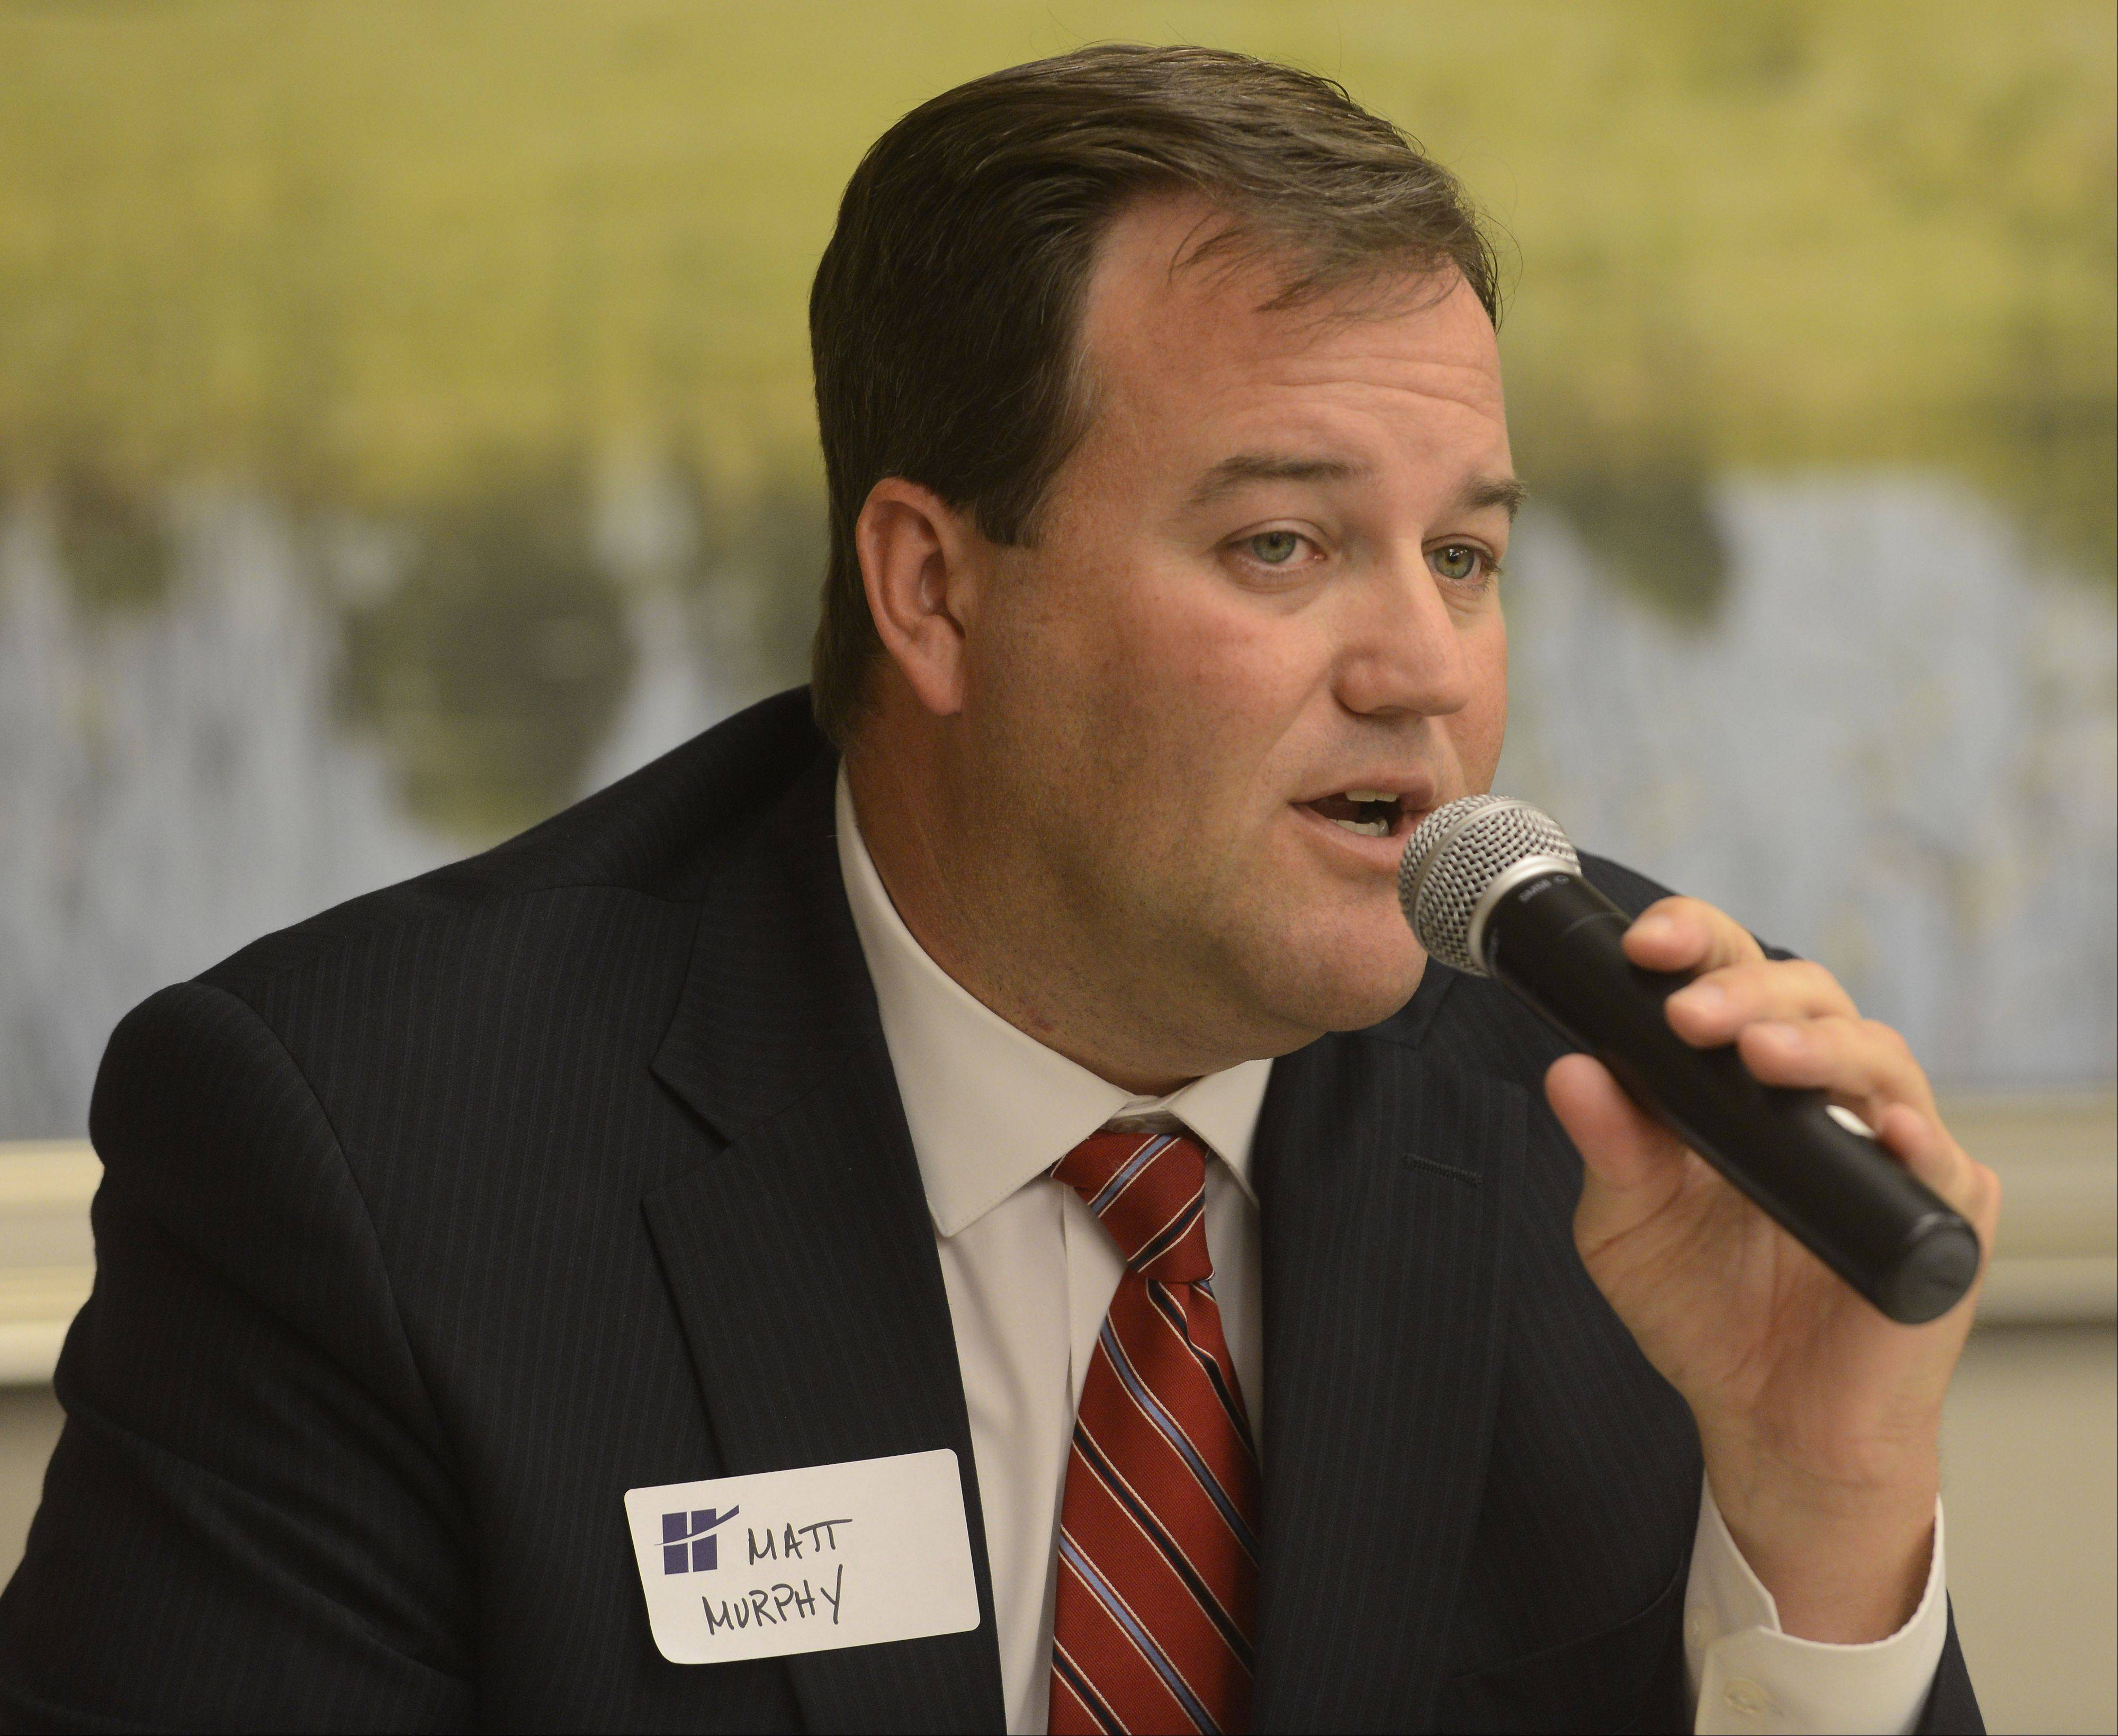 State Sen. Matt Murphy speaks during the Hoffman Estates Chamber of Commerce's annual legislative lunch at the Alexian Brothers Women and Children's Hospital in Hoffman Estates Friday.